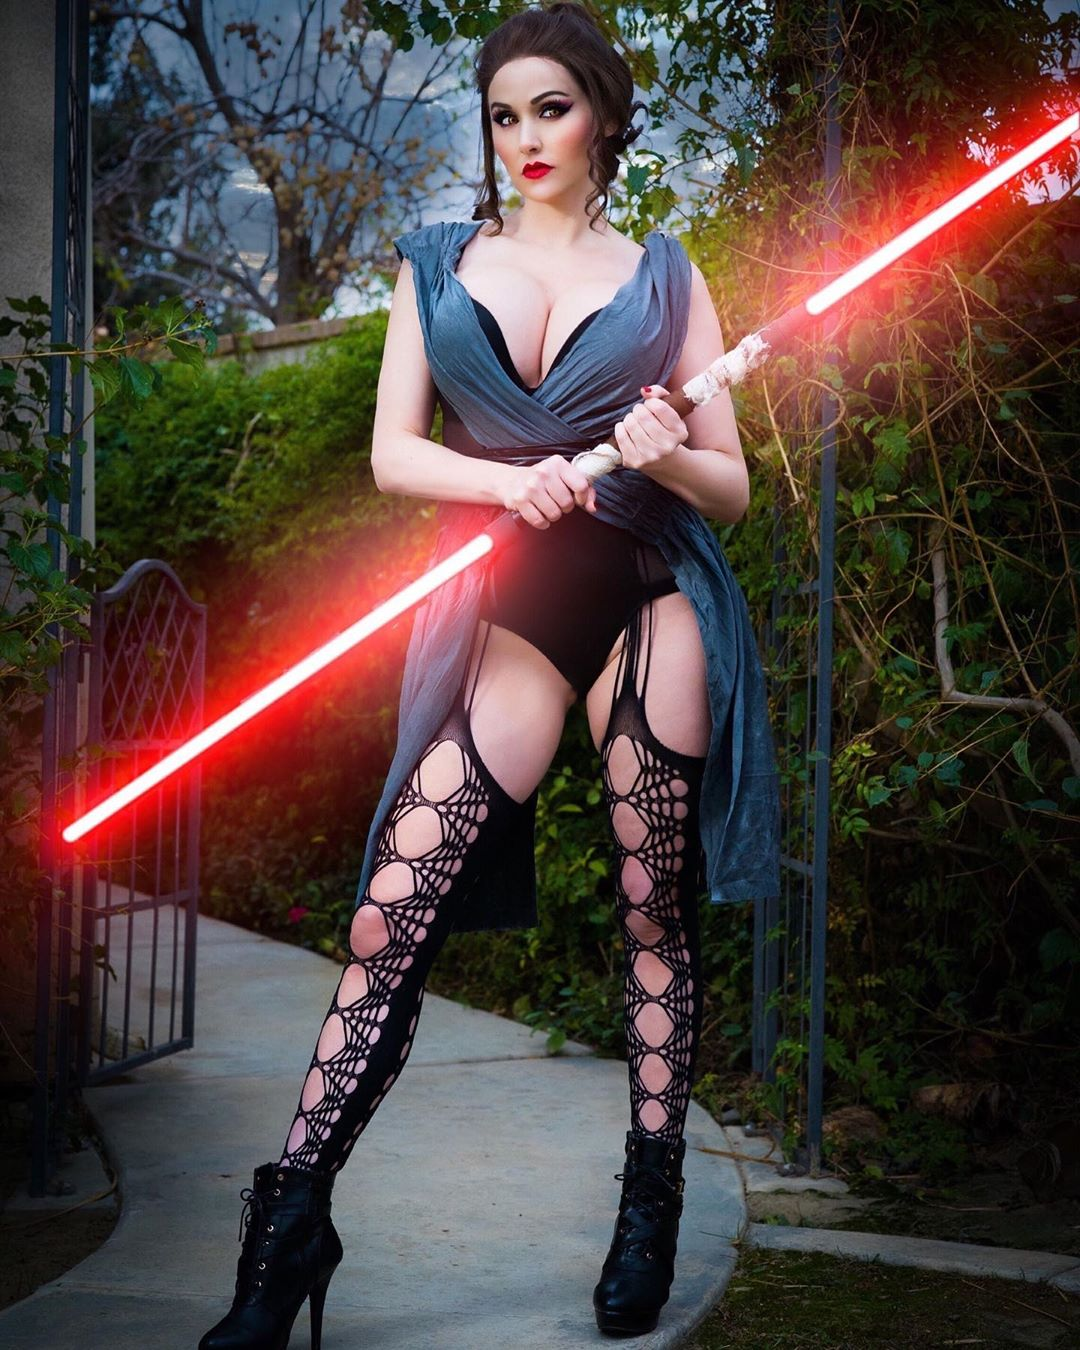 sith rey cosplay by Angie Griffin